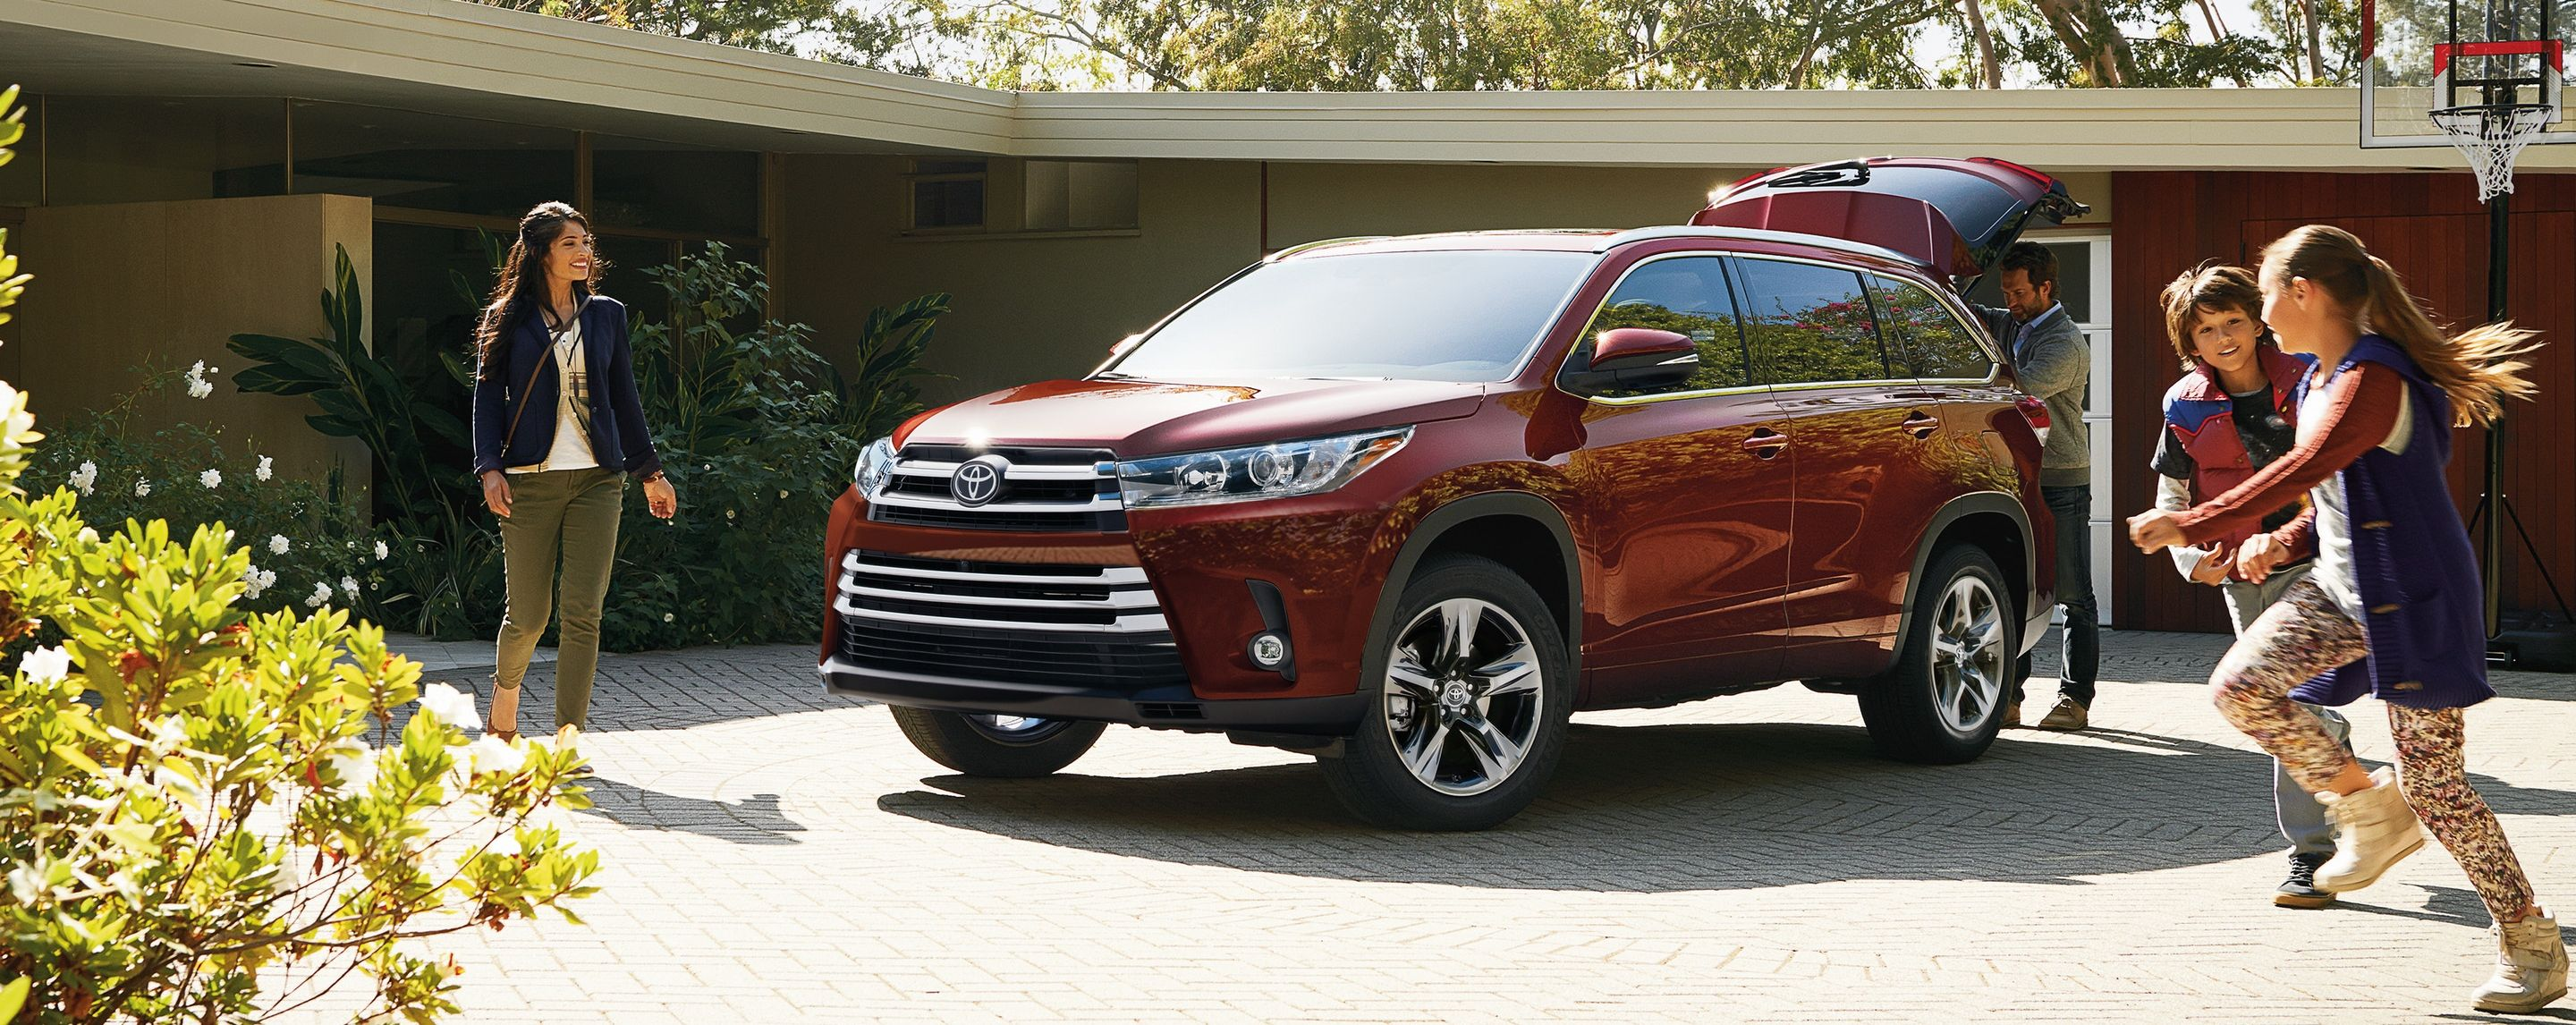 2019 Toyota Highlander For Sale Near Loves Park Il Anderson Toyota